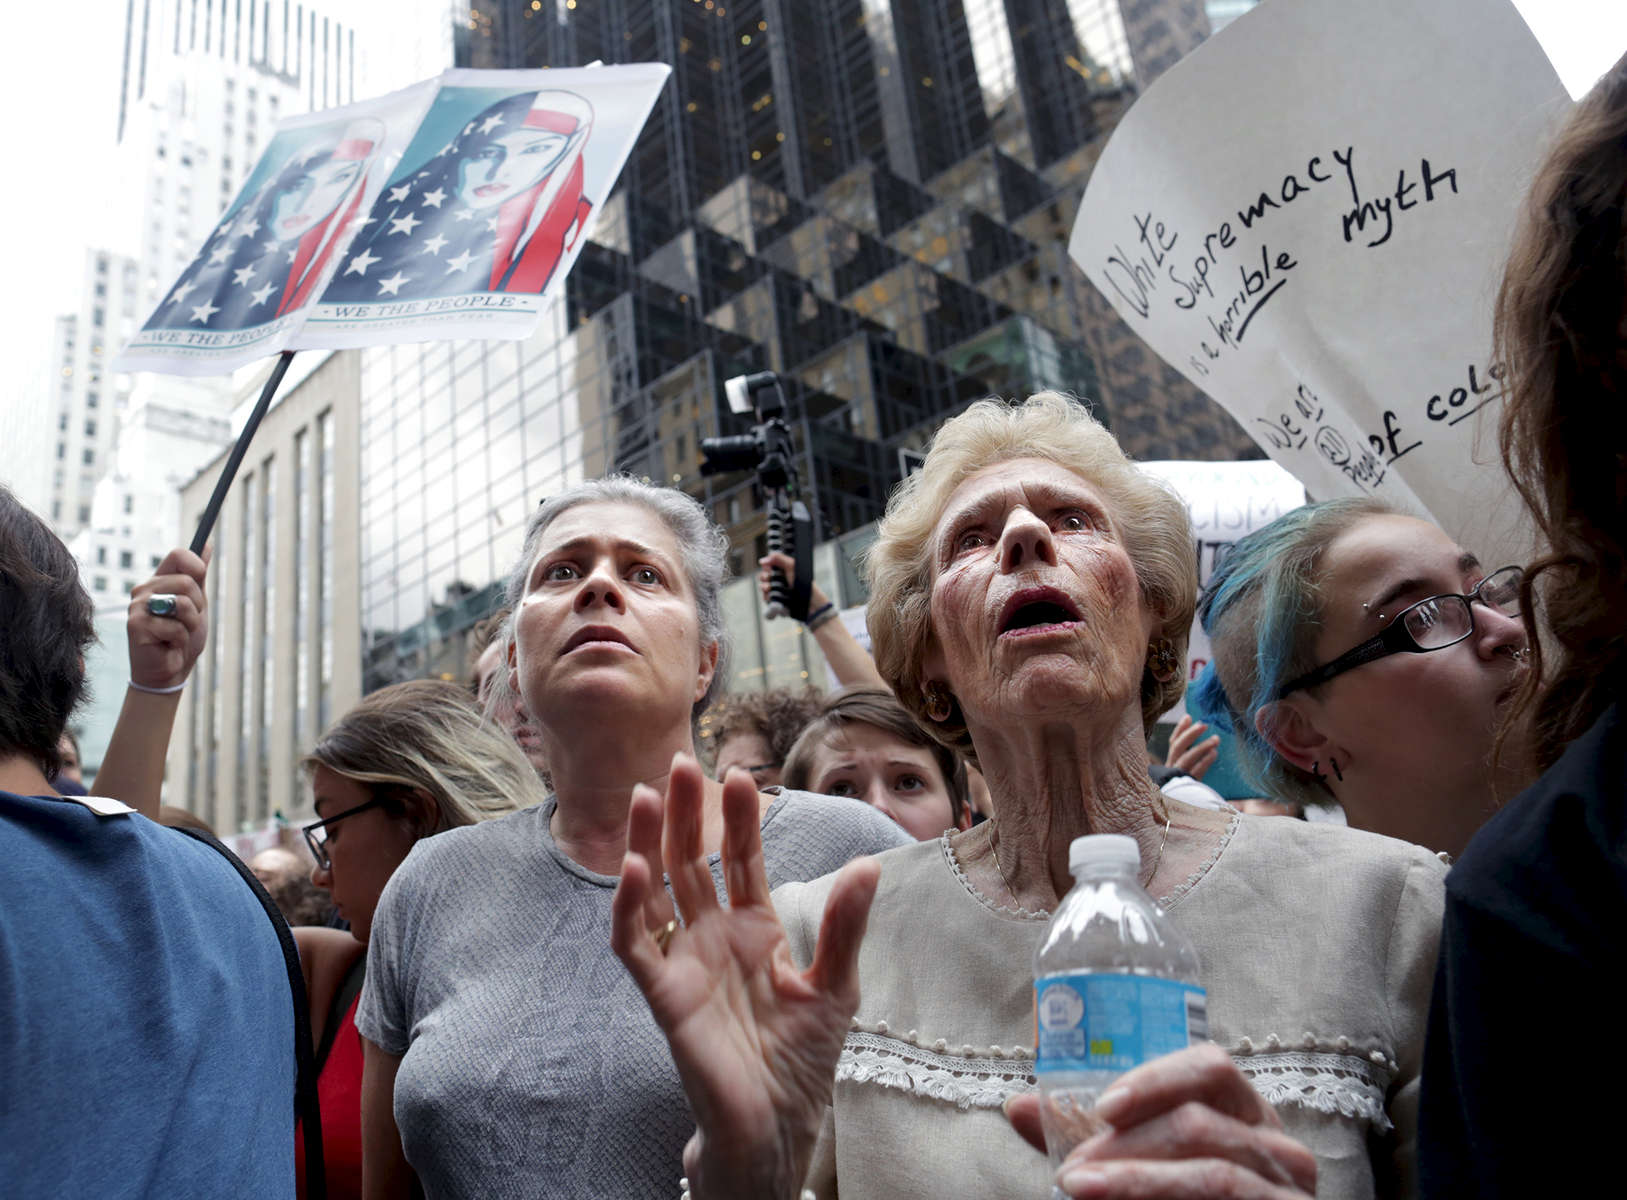 "(L-R) Hillary Ewing and her aunt, Sally Weiner, join thousands of people in front of Trump Tower in Manhattan, NY, on August 14, 2017, protesting this weekend's violent white nationalist rallies in Charlottesville, Virginia.-""Trump Gawkers{quote} is a visceral look at what draws people to Trump Tower, the current residence of U.S. President elect Donald Trump. Hoards of people undertake the trek, bearing security and weather roadblocks, to stare, gawk, absorb, record. The magnetism to the tower (and by extension, to the man inside it,) manifests in the sheer numbers of daily visitors, as well as in the fascination etched across their faces. Upon first look, the time so many spend there seems like sport and amusement, but underneath upturned eyes and selfie smiles prevails an undercurrent of anxiety - and not just for those who didn't want Trump in the Oval Office. Some of the electorate that voted against Hillary is now unsure for which version of Trump they voted. People's upward gazes, no matter their political views, seek answers: How could this happen? Or now that it has, what will it mean?"